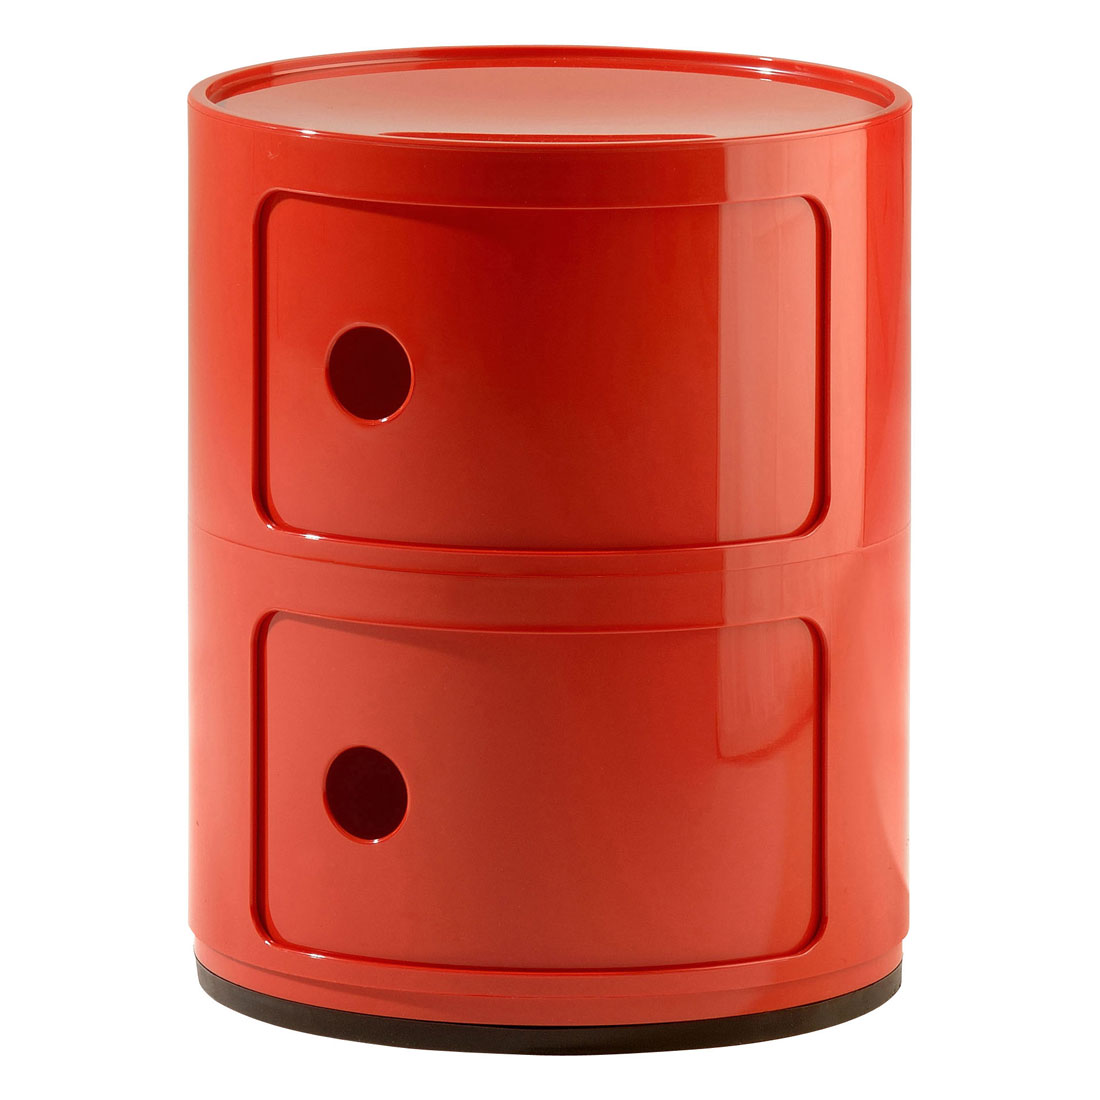 Kartell Componibili 2 Tier Round Storage Unit   Rubberised Base